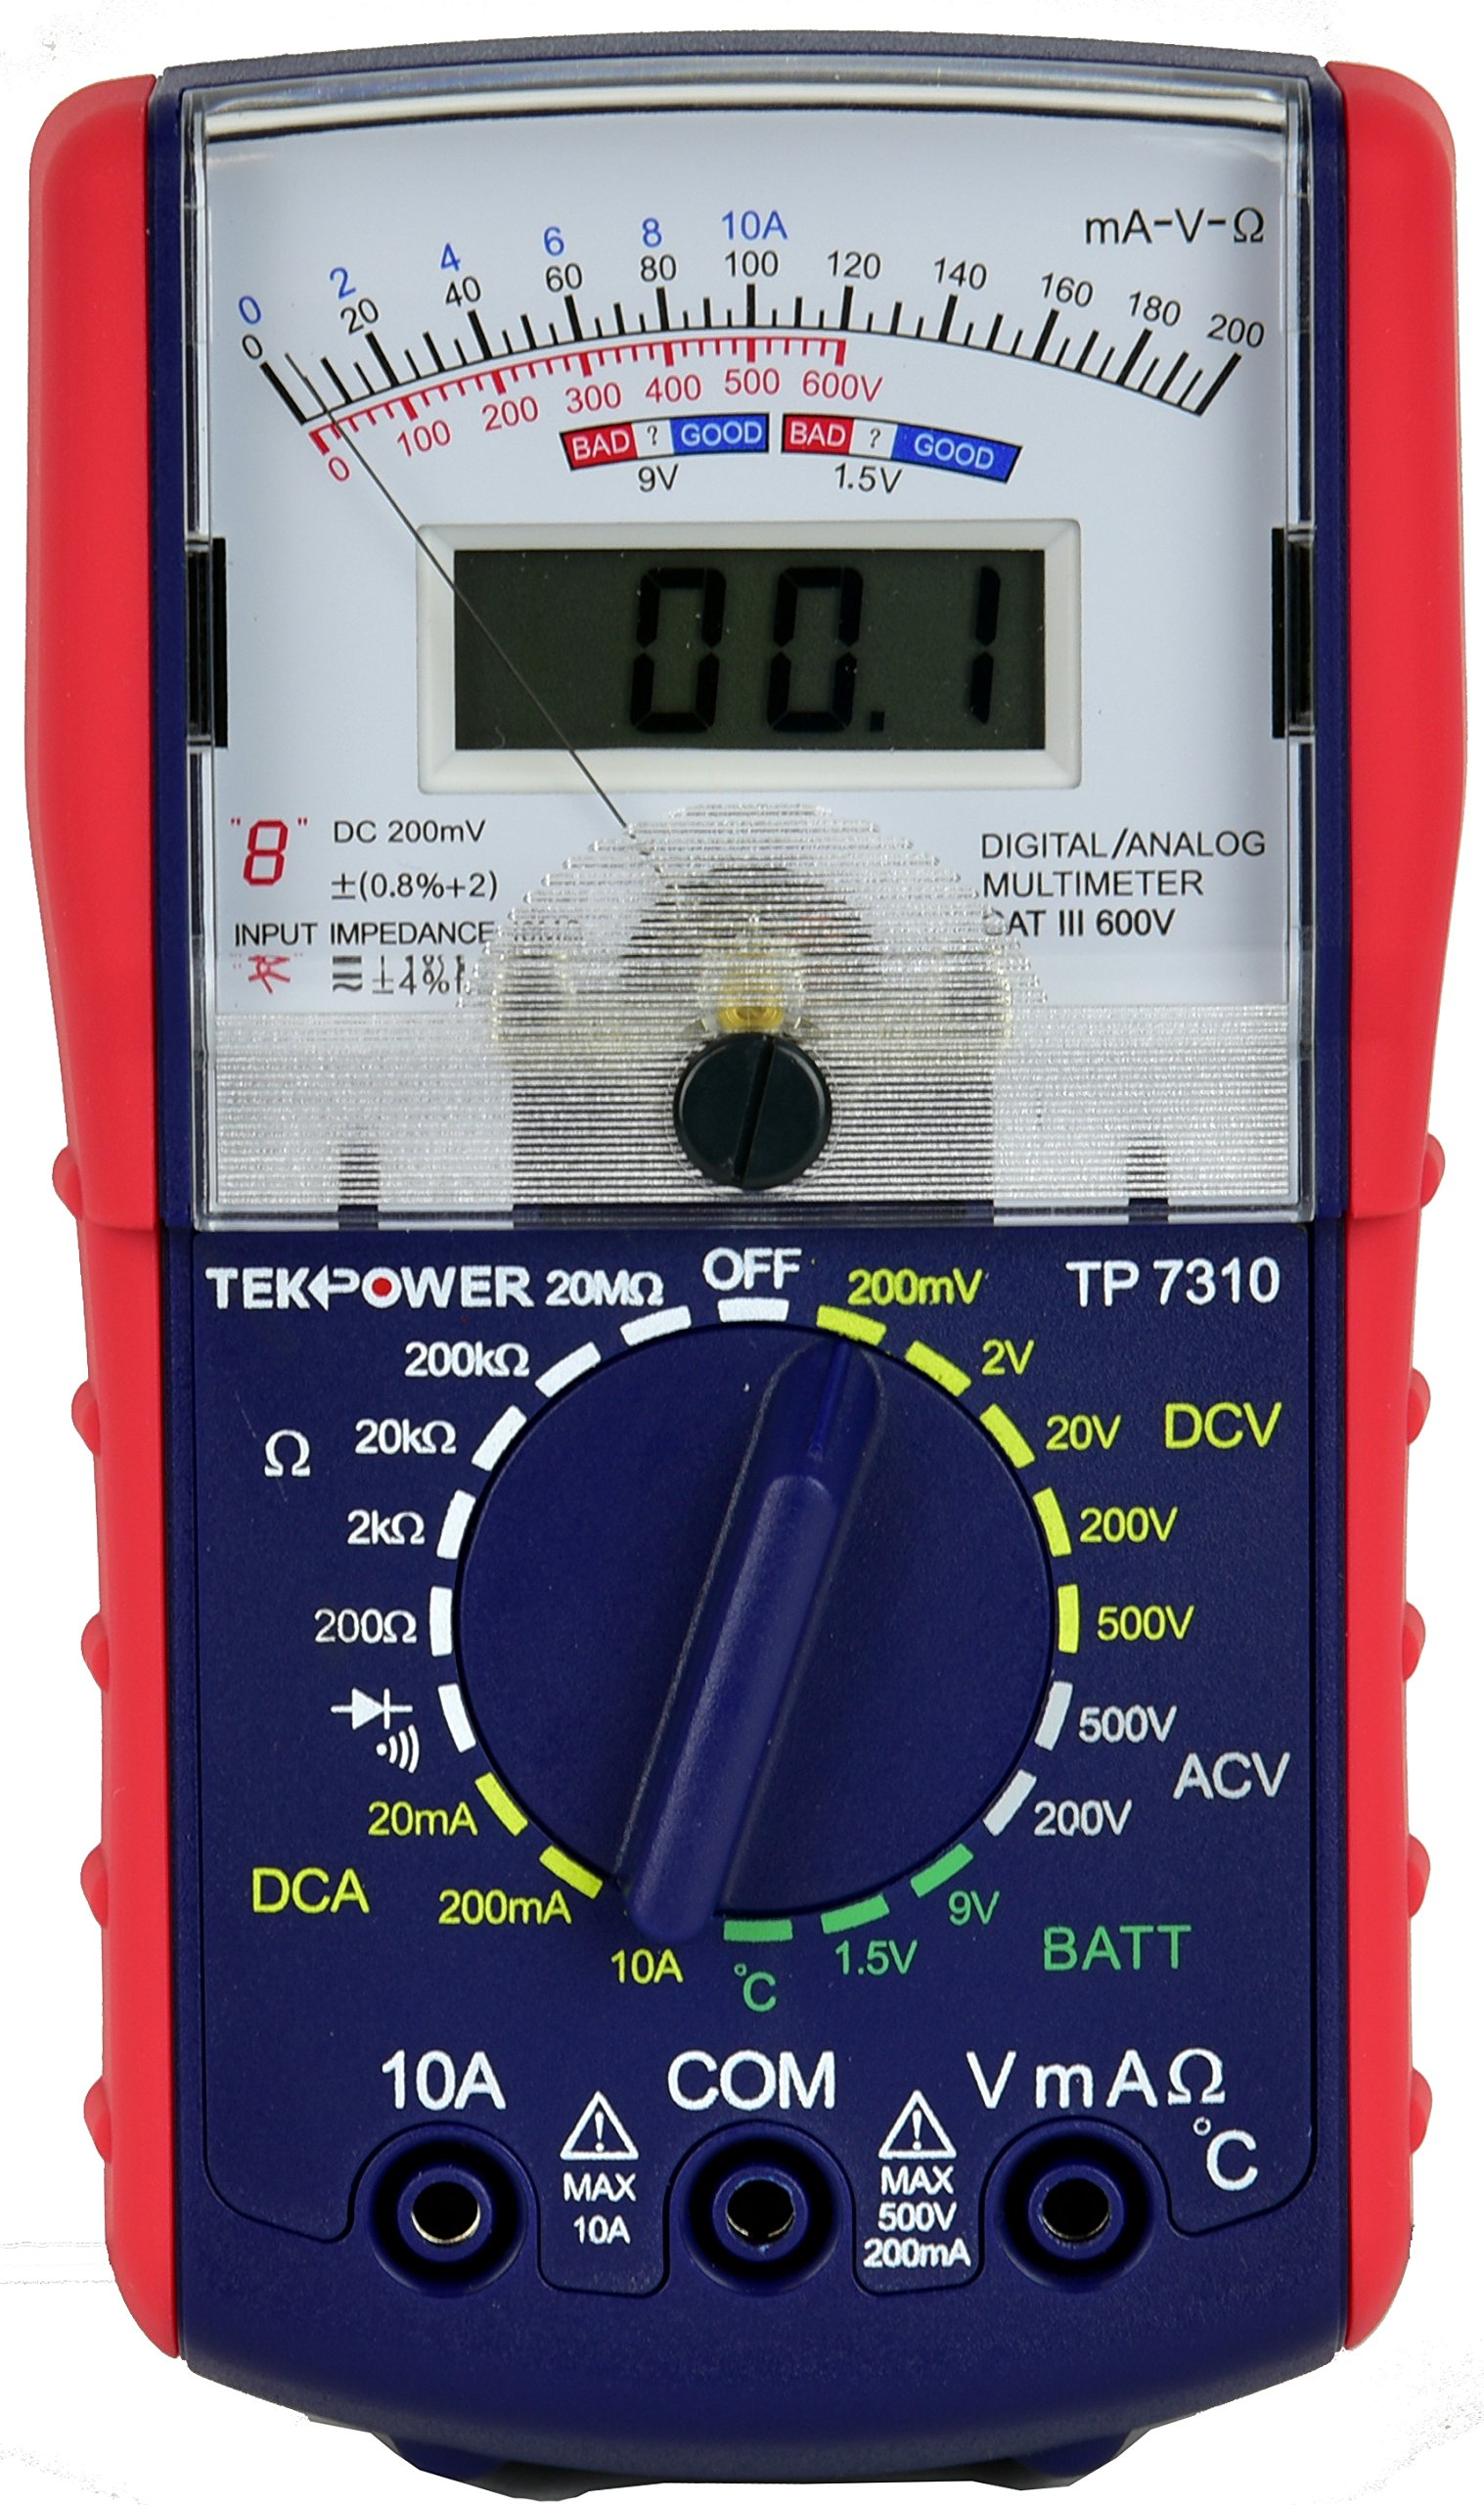 Tekpower TP7310 Hybrid Dual Display: Analog & Digital Multimeter with Battery and Ambieant Temperature Tester